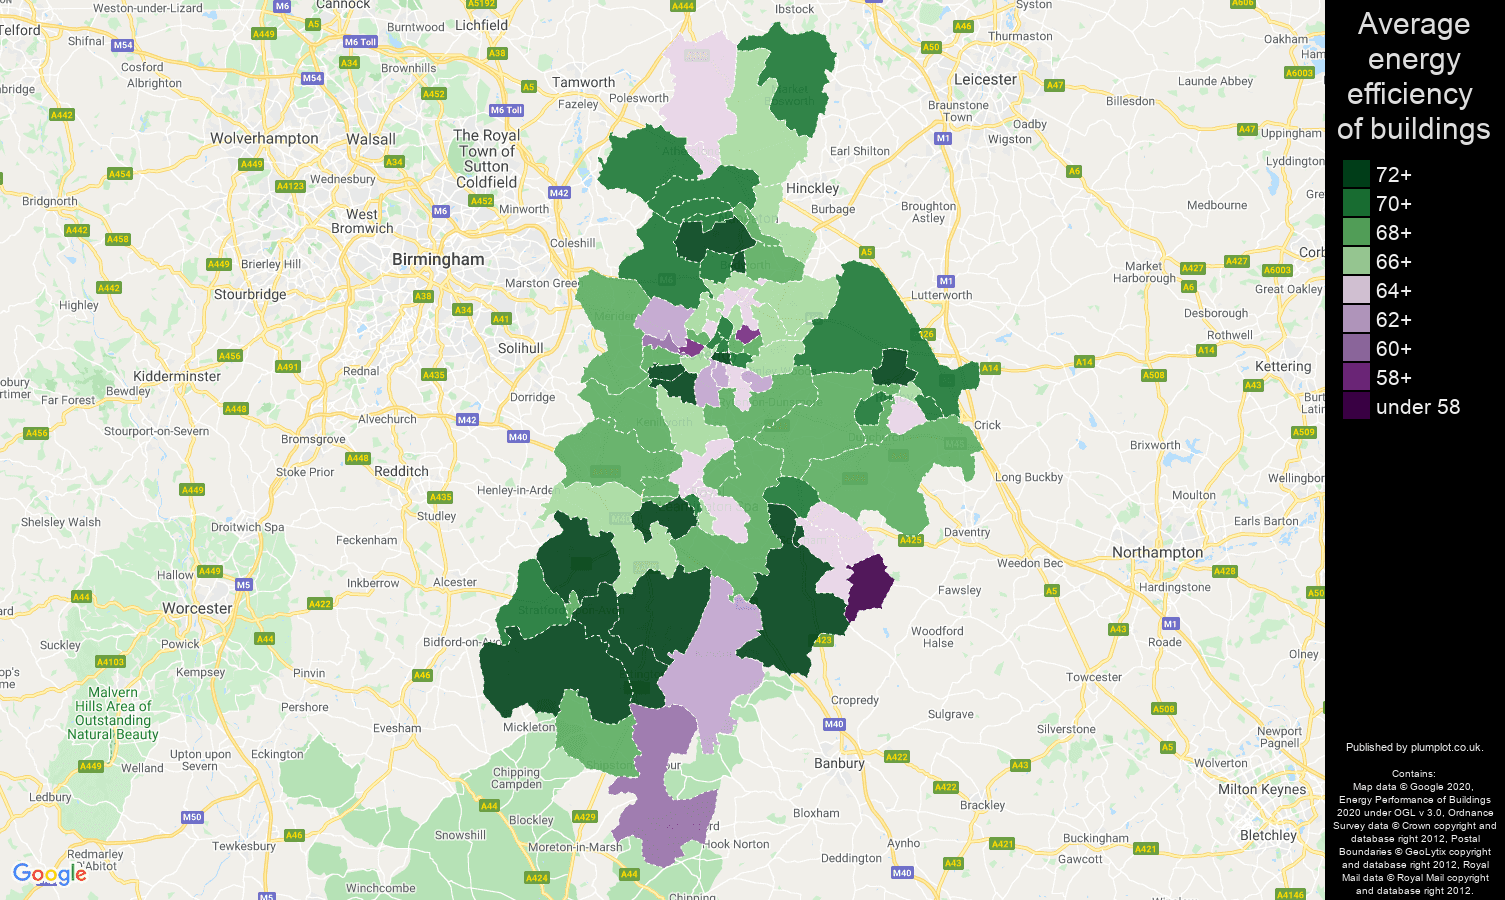 Coventry map of energy efficiency of flats